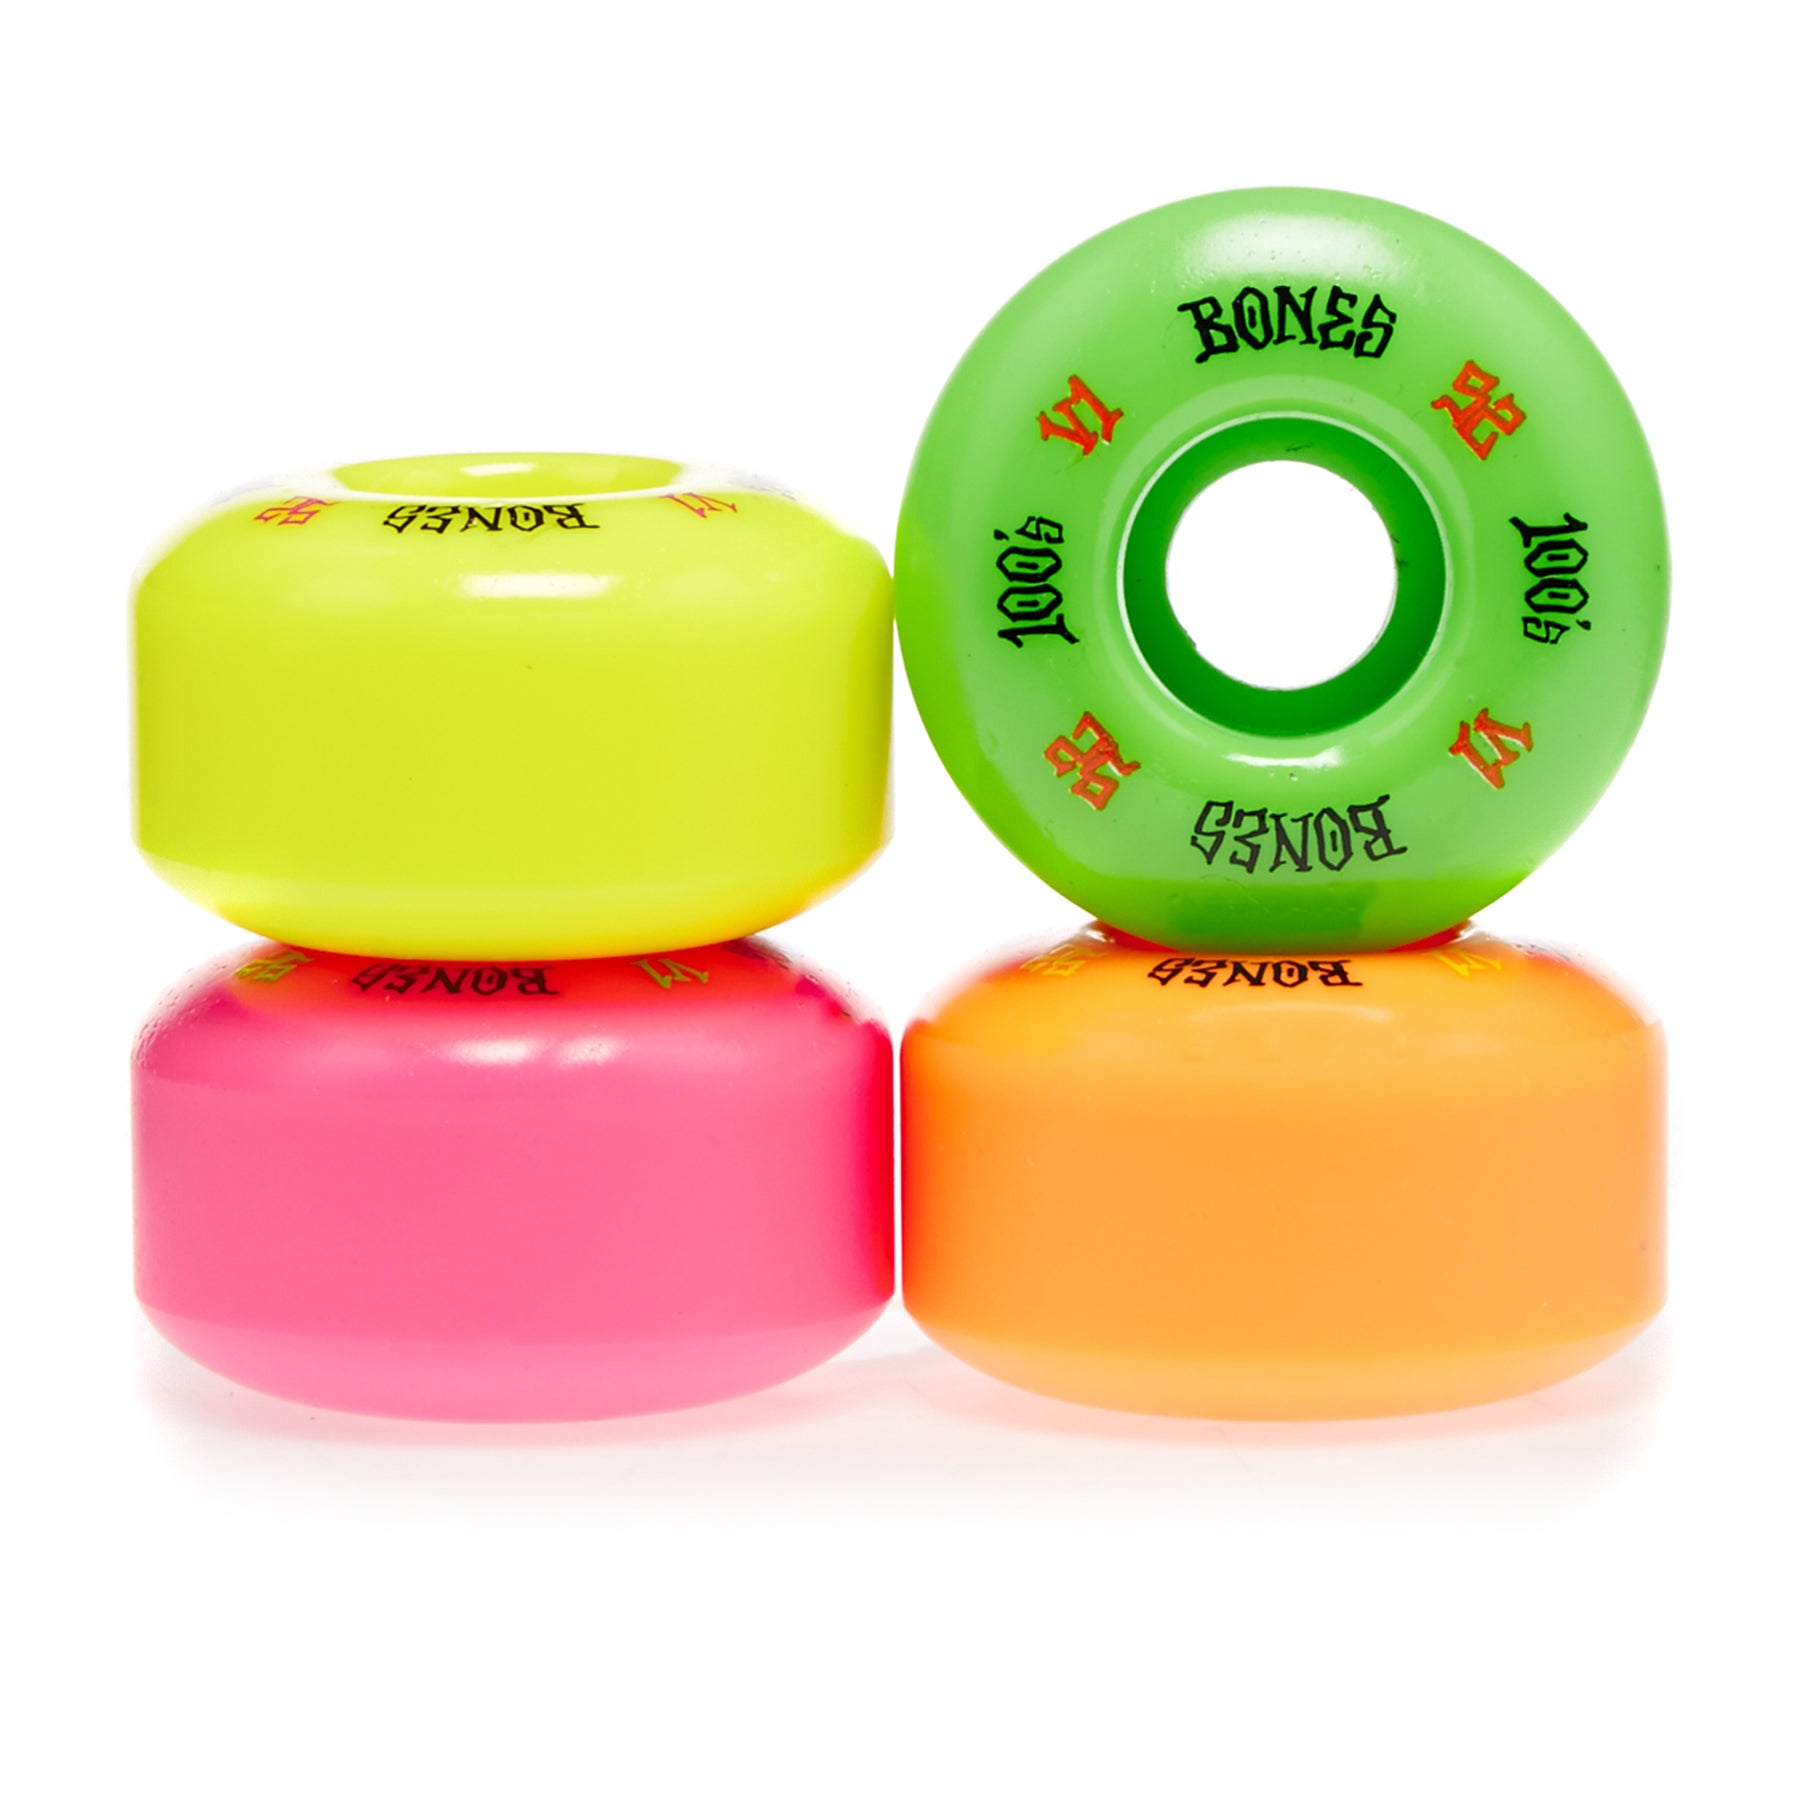 Bones 100's Party Pack #4 V1 52 Mm Skateboard Wheel - Multicolour